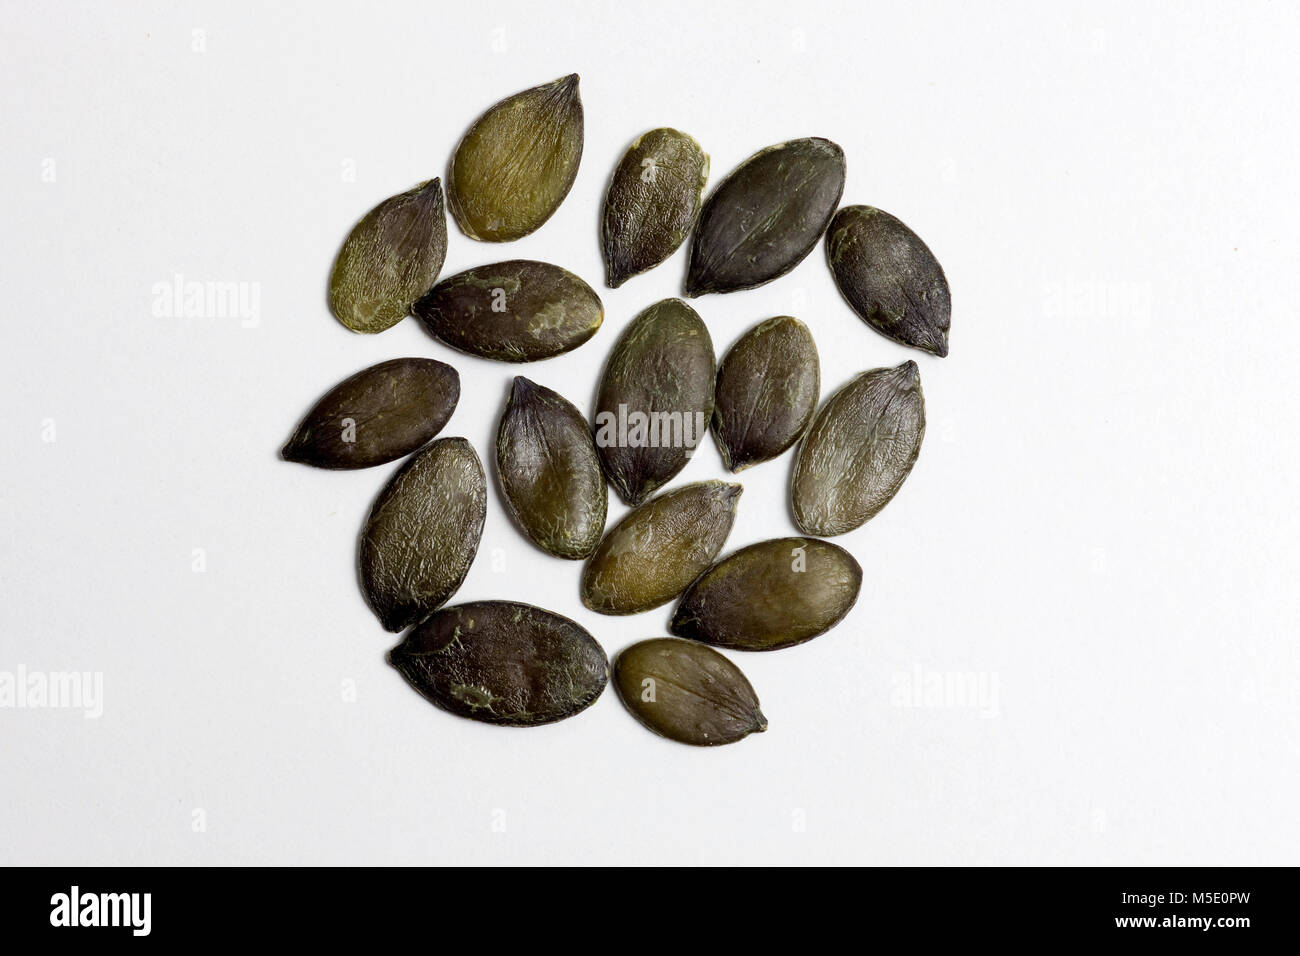 Remedial plant, dryly, plant parts, remedial plants, pumpkin seed, pumpkin cores, cores, seeds Stock Photo